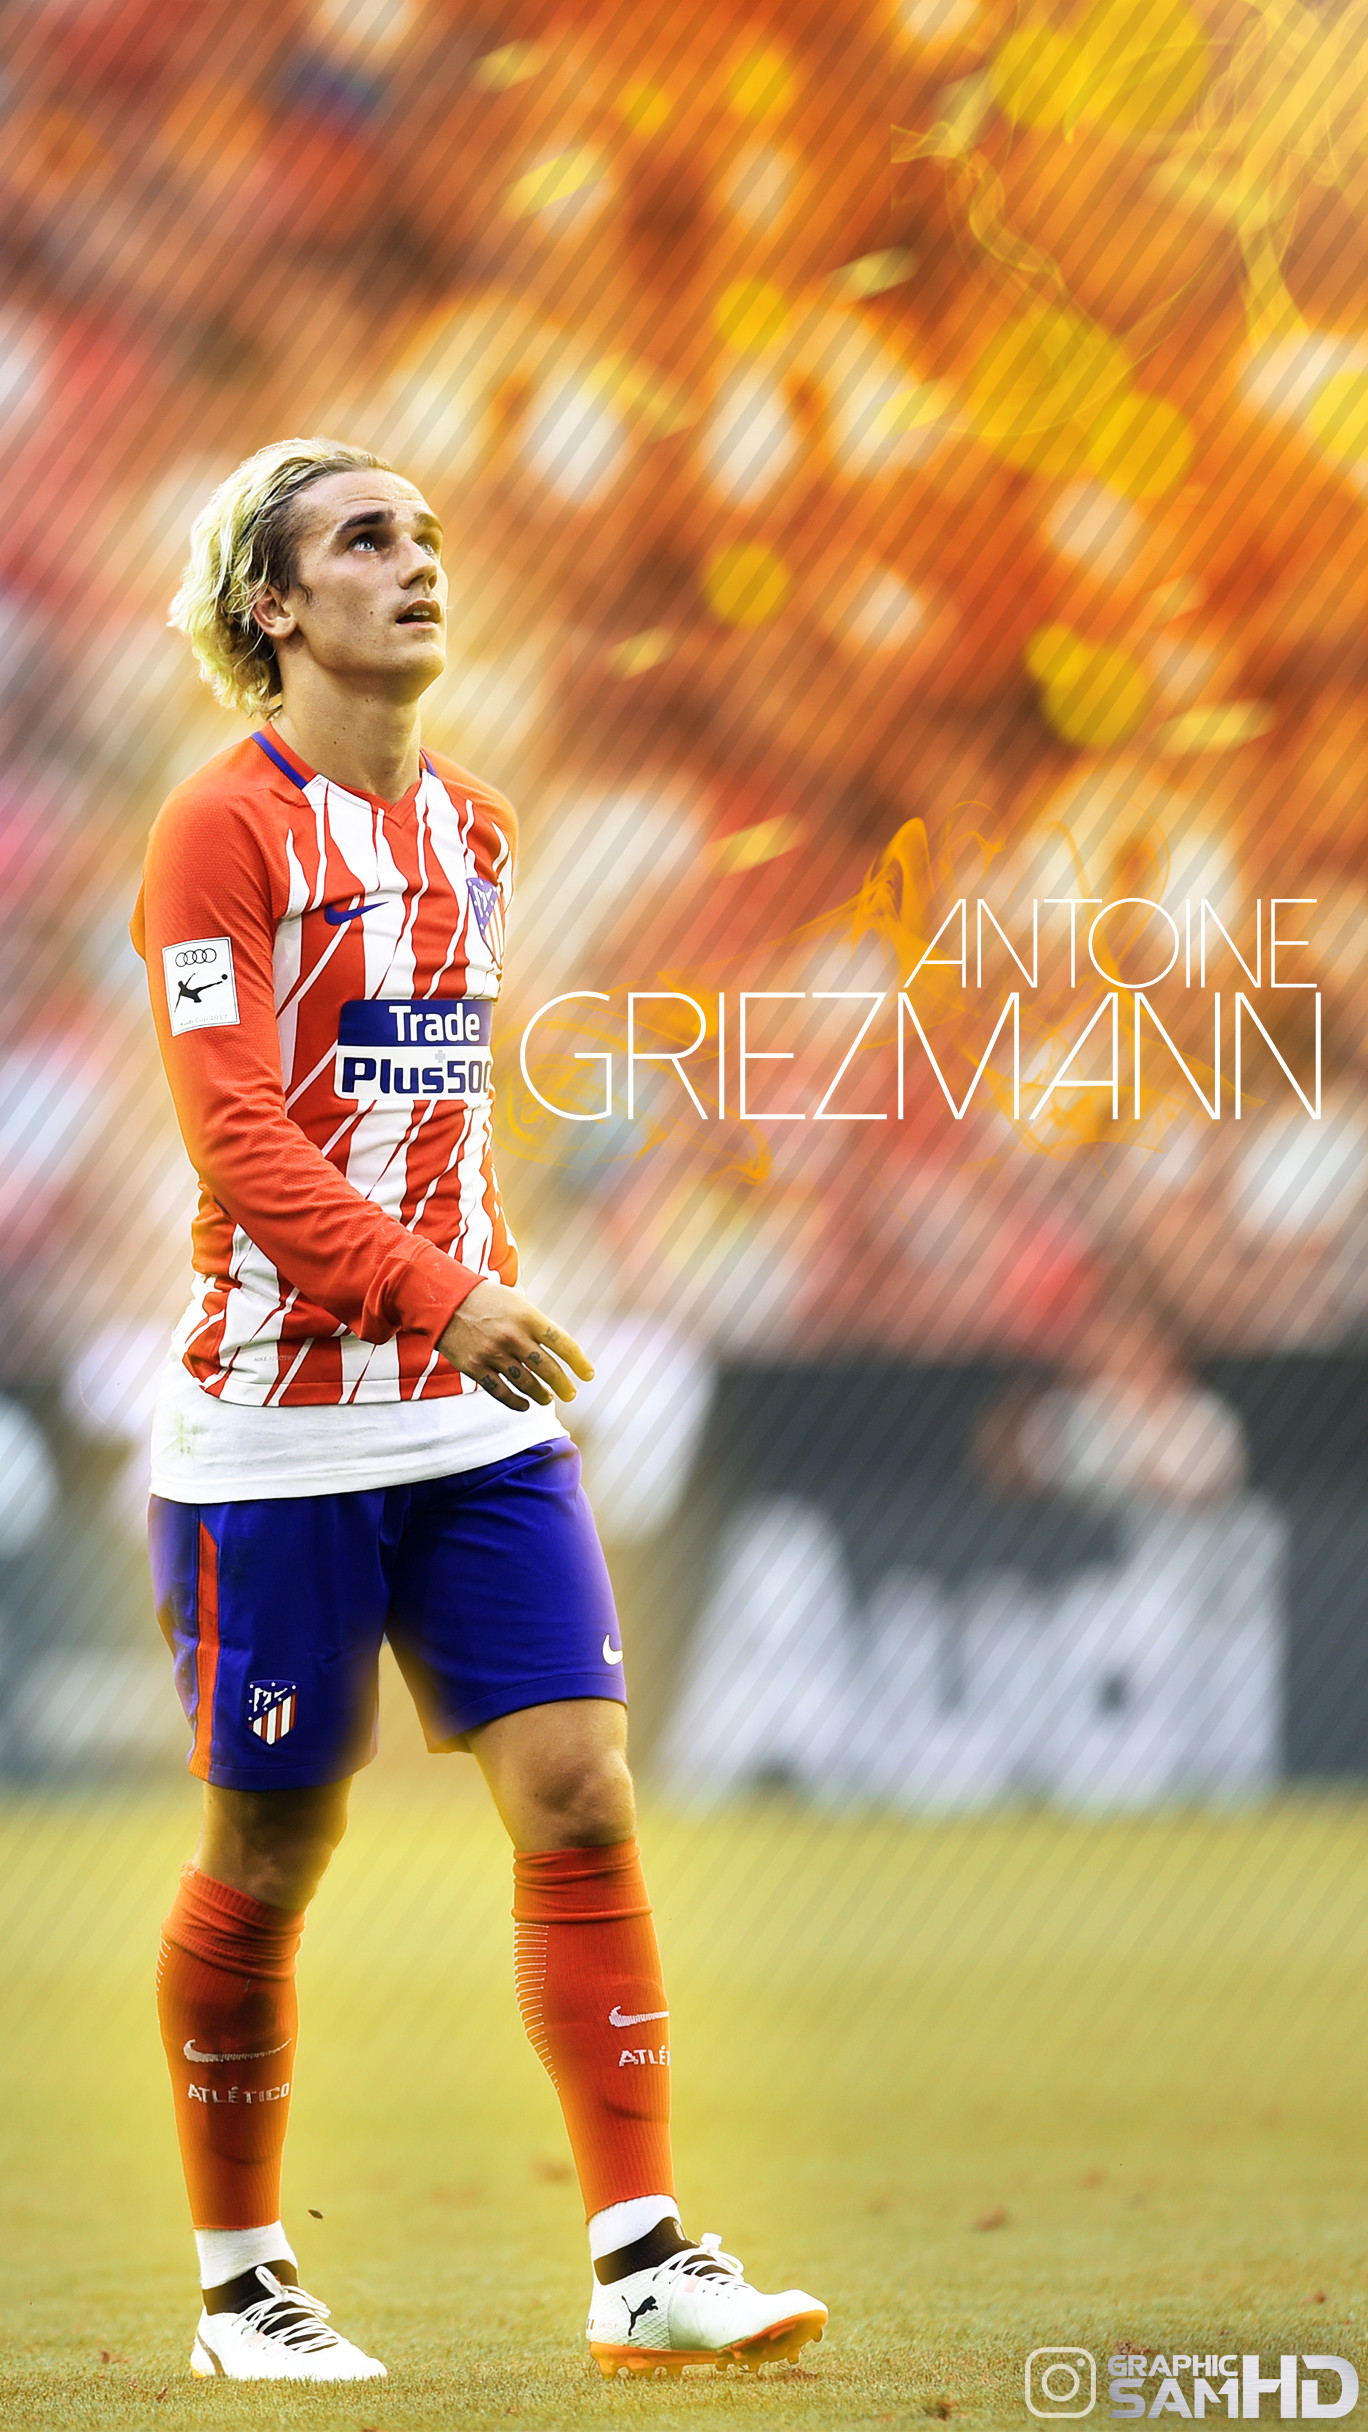 Antoine griezmann wallpapers 86 images for Ecran photo 2018